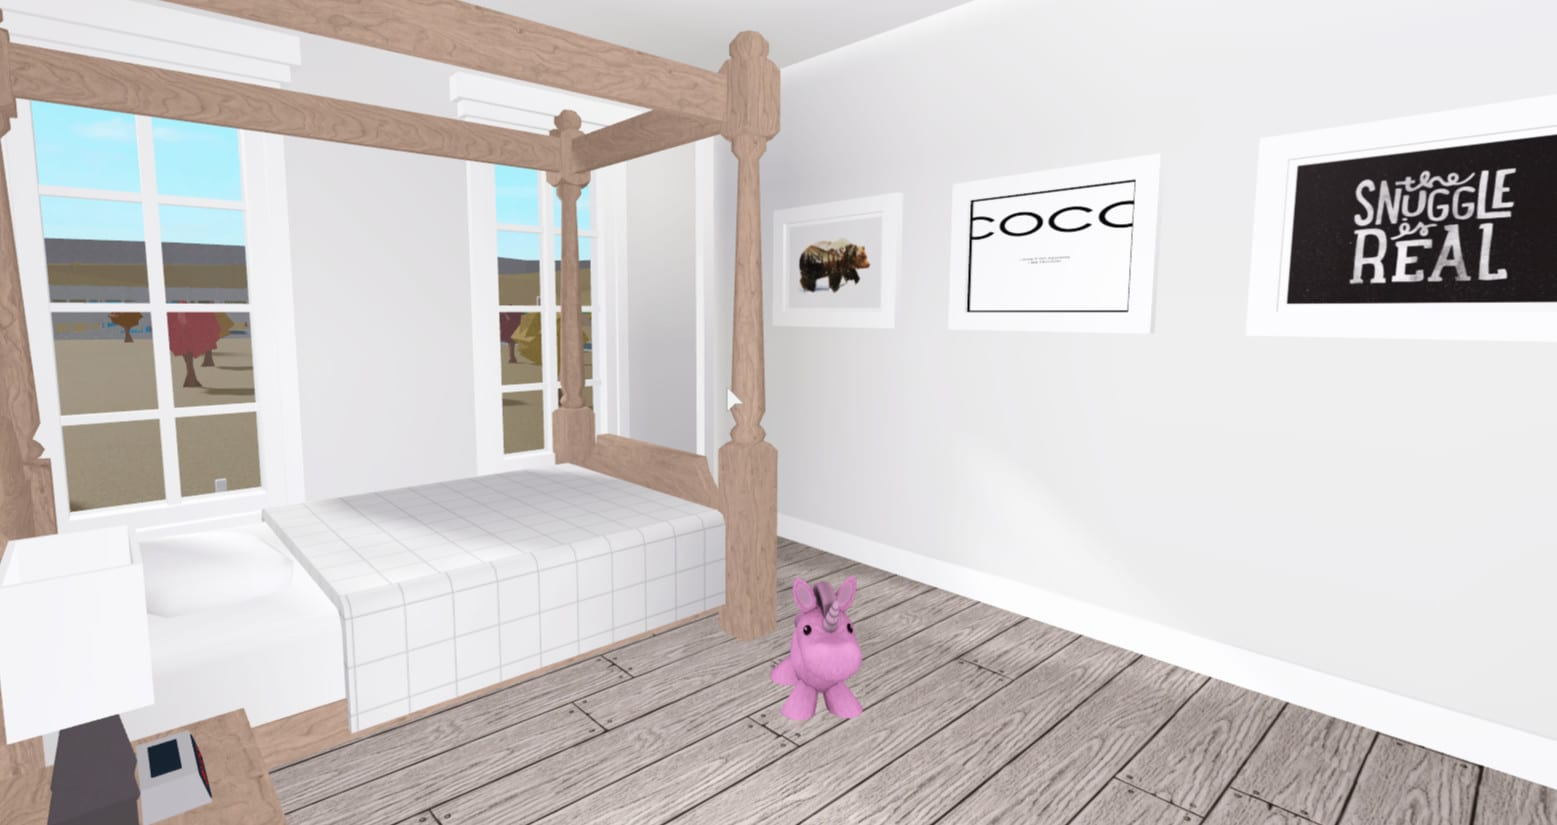 Roblox Bloxburg Aesthetic Bedroom Bedroom Bloxburg Room Ideas Build You An Aesthetic Roblox Bloxburg House By Mxxnsicle